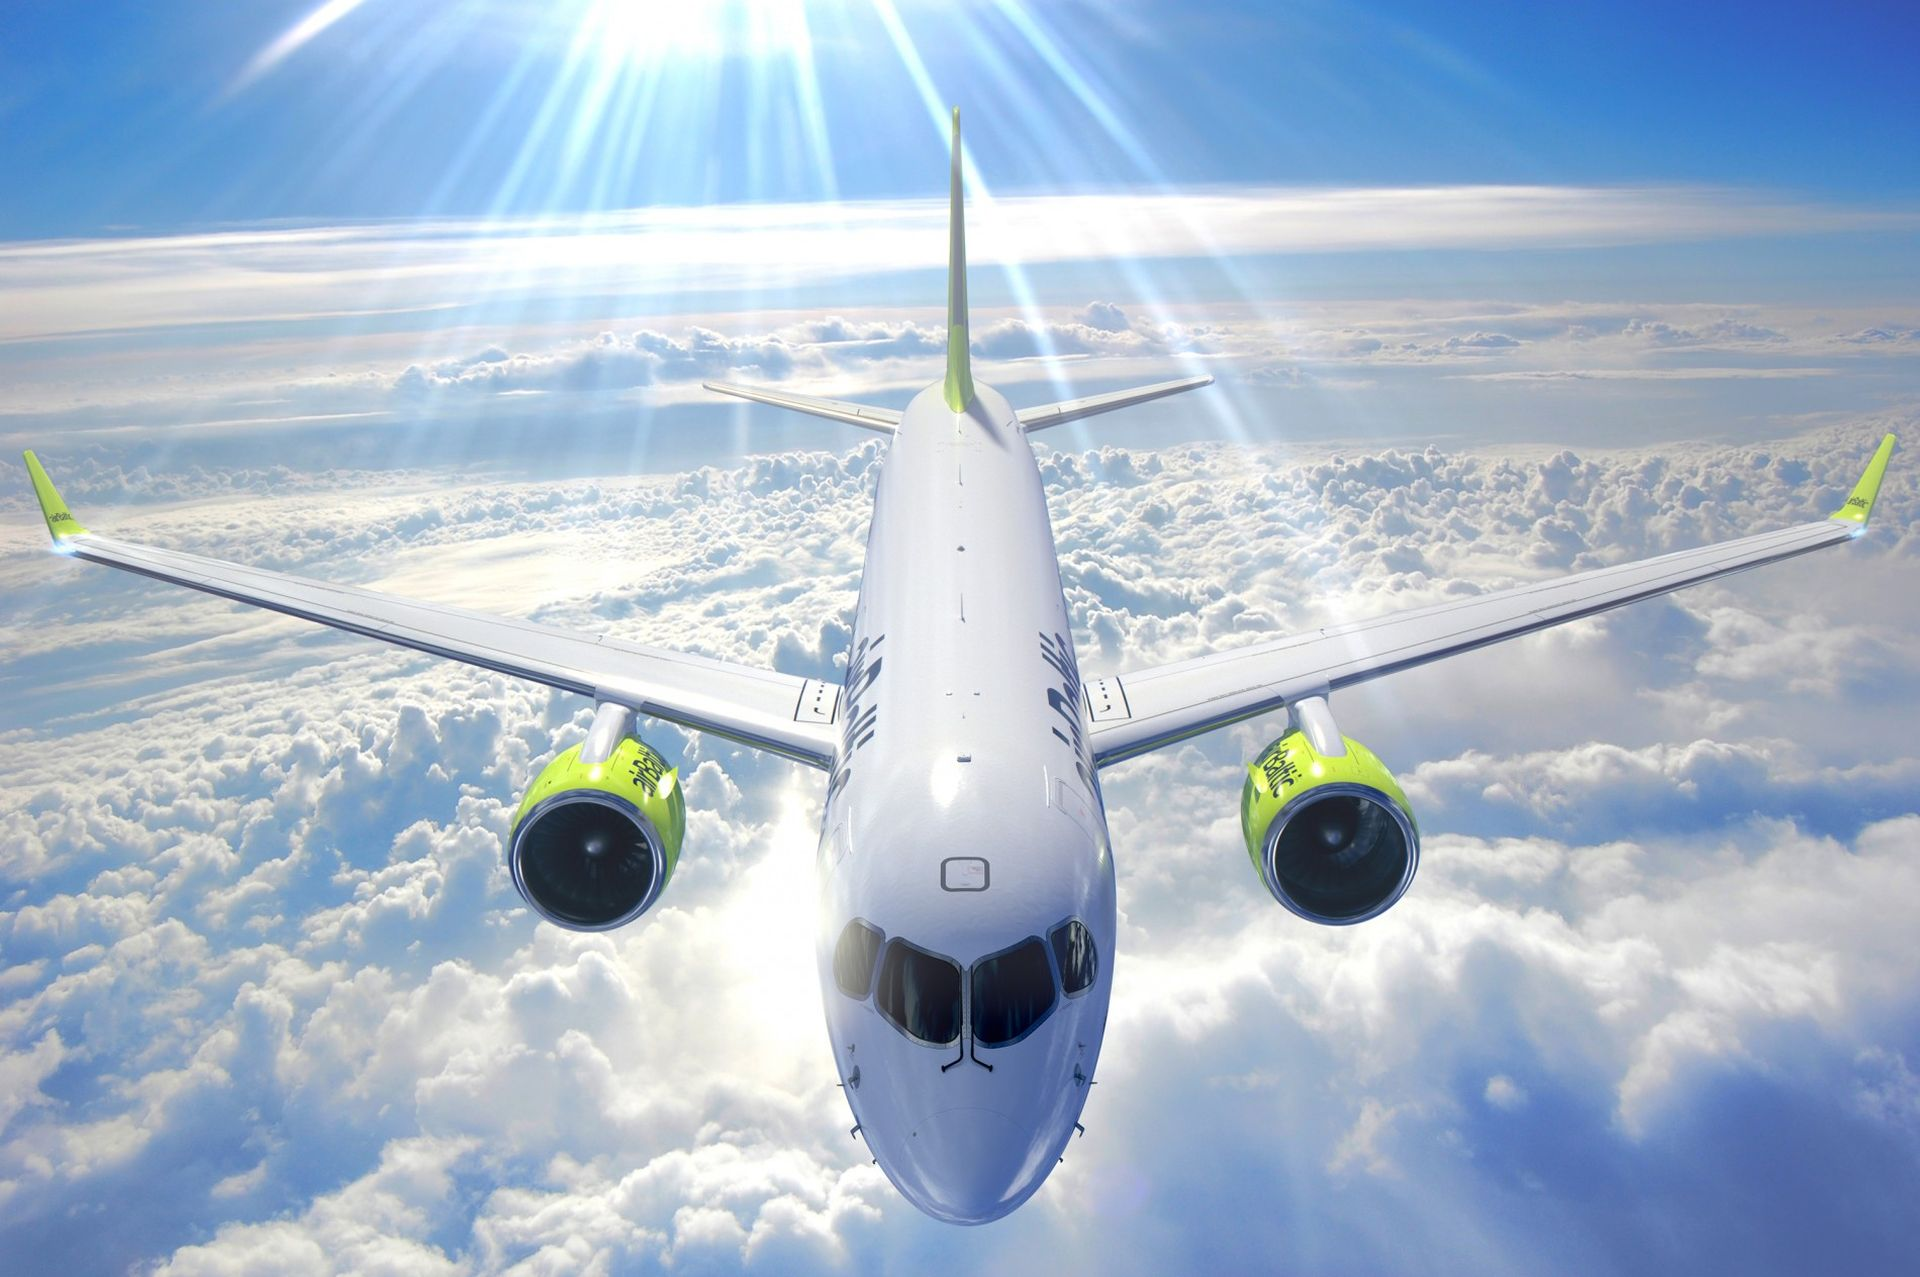 Airbus A220-300 v barvách airBaltic. Foto: airBaltic